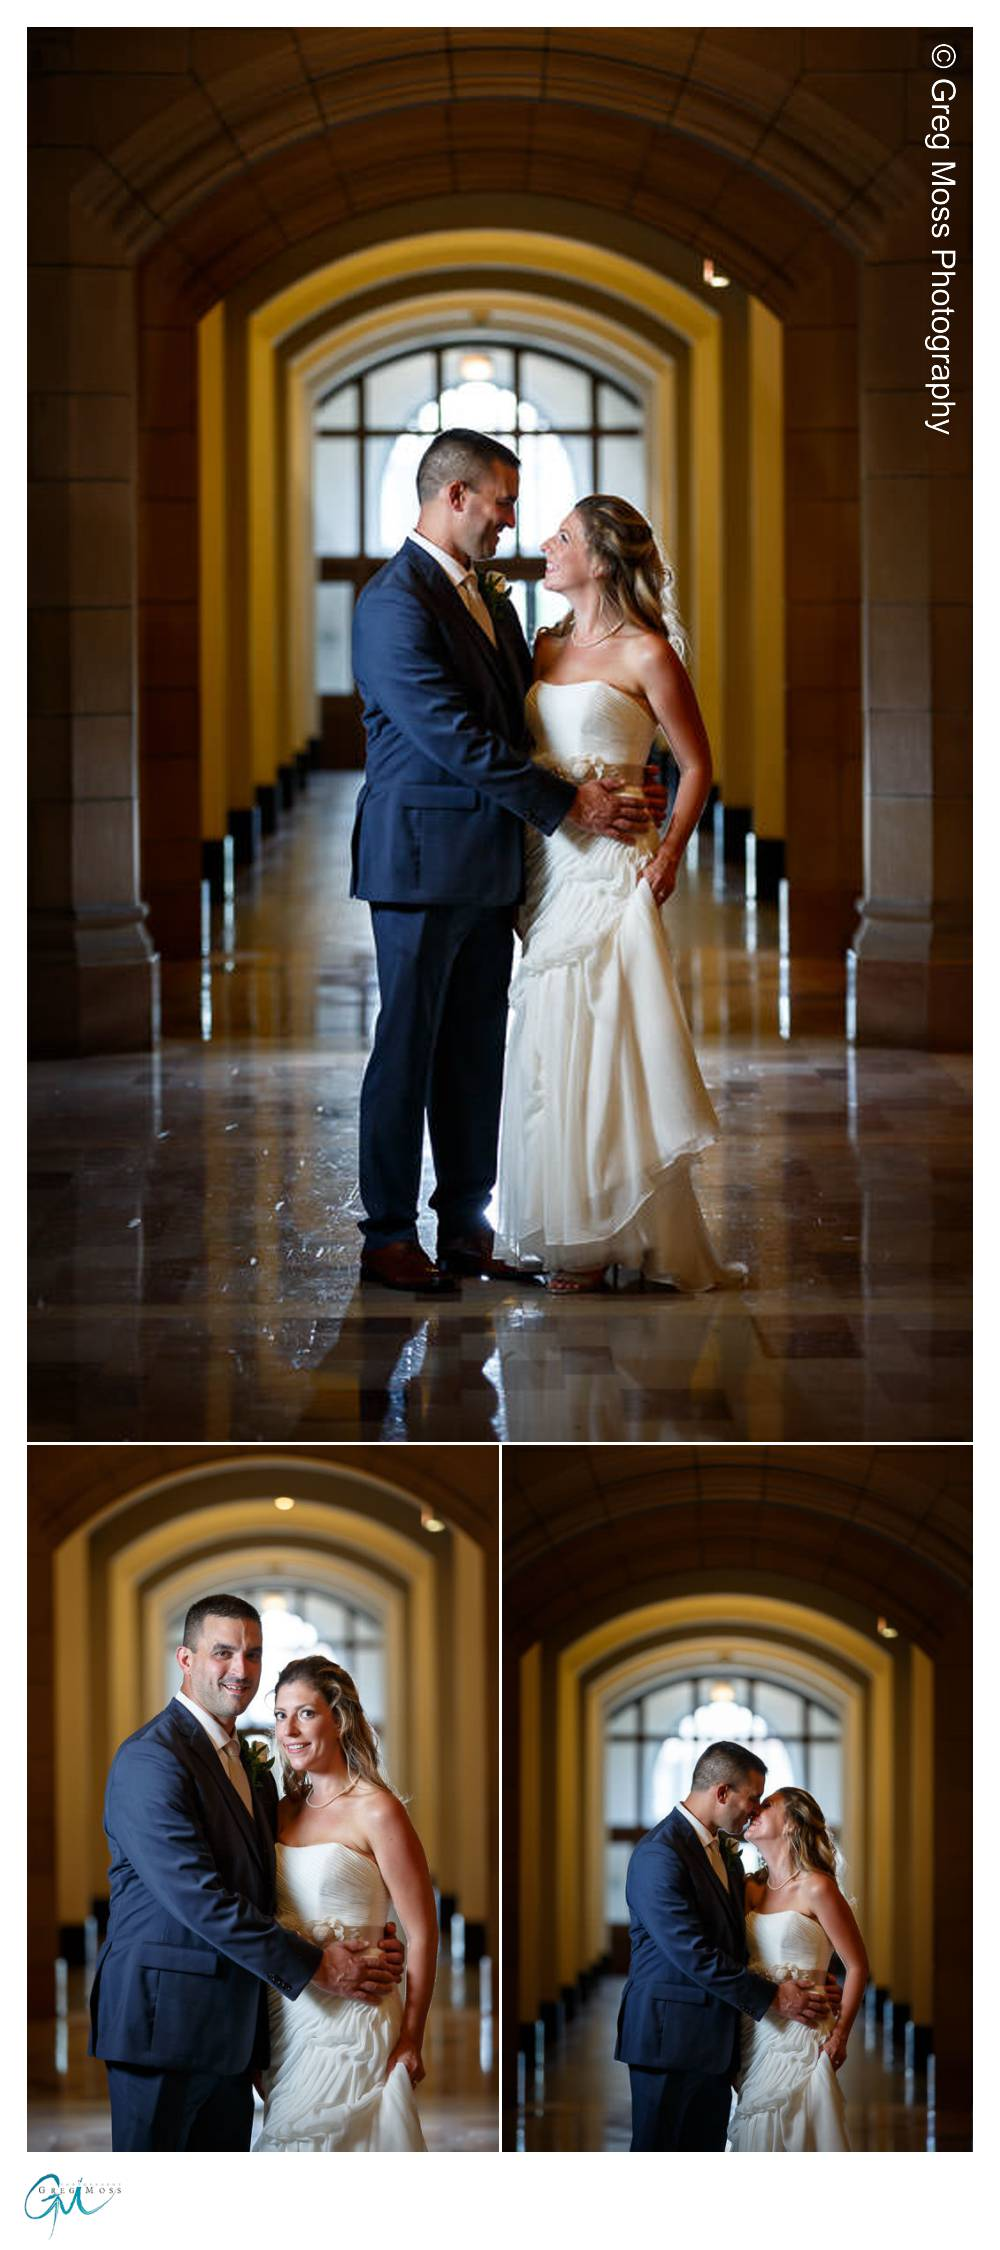 Wedding couple portrait inside Elms College